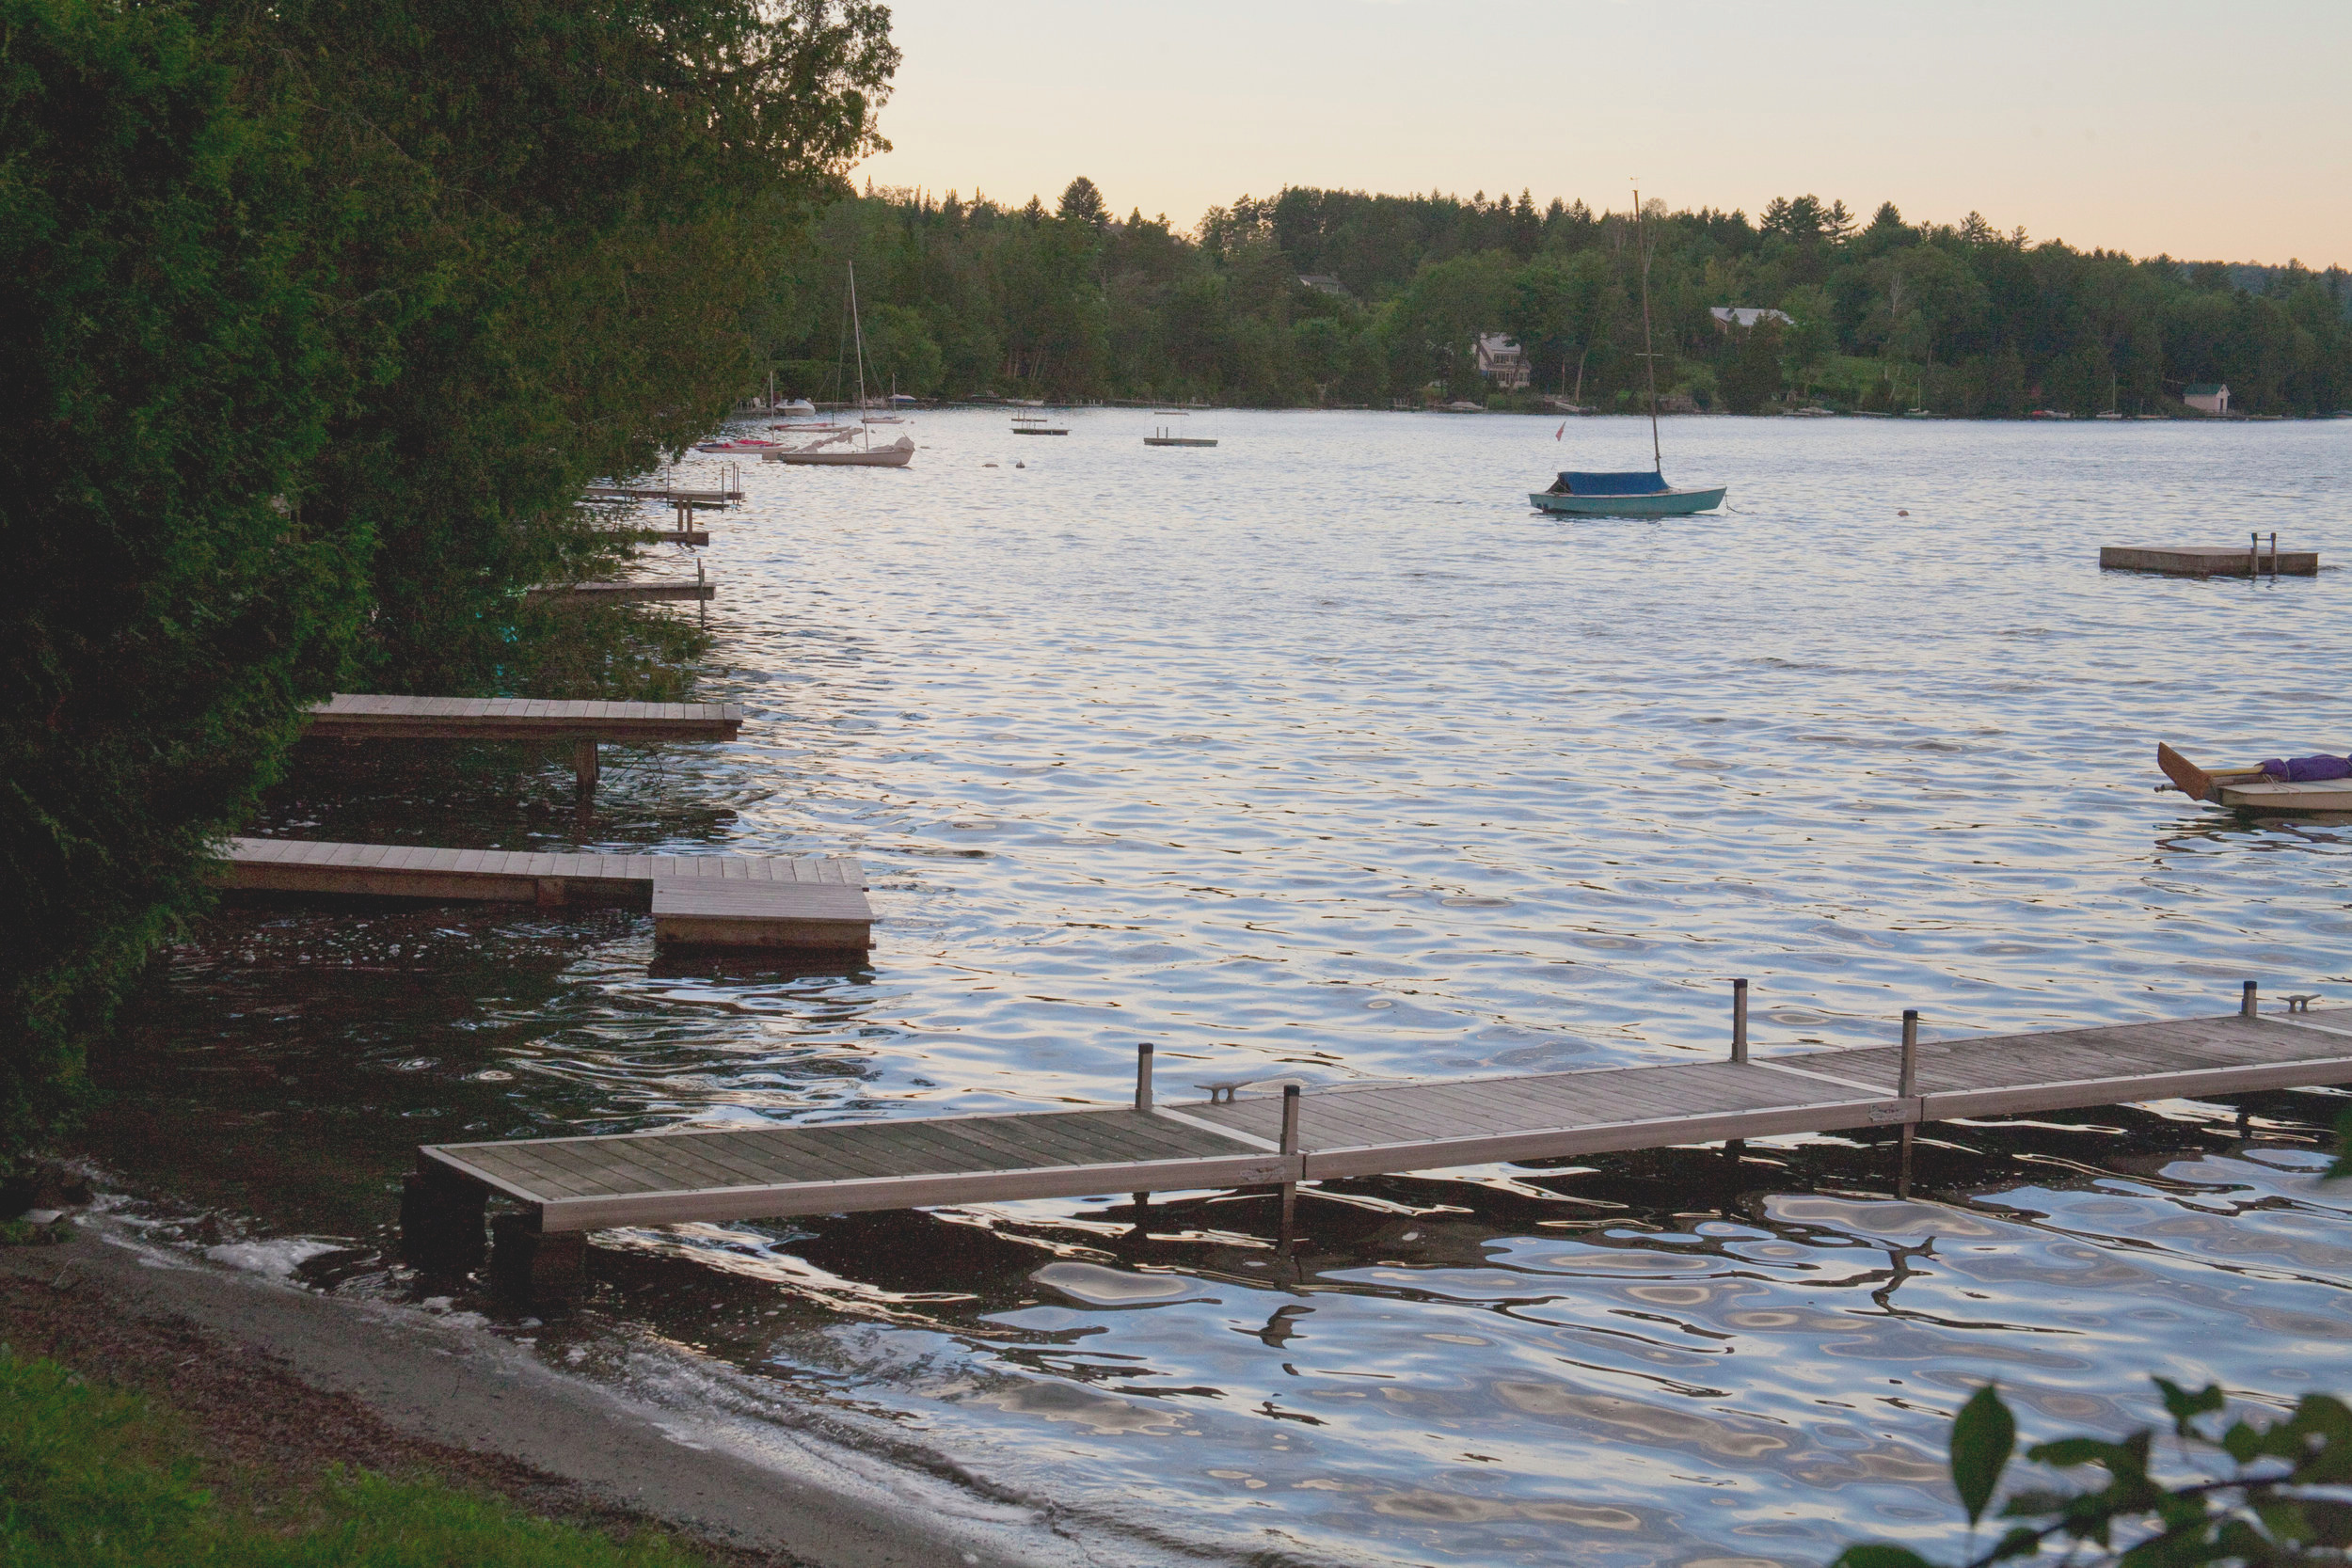 Beneath the surface of our Vermont summer paradise is a growing unease about the changing climate. -